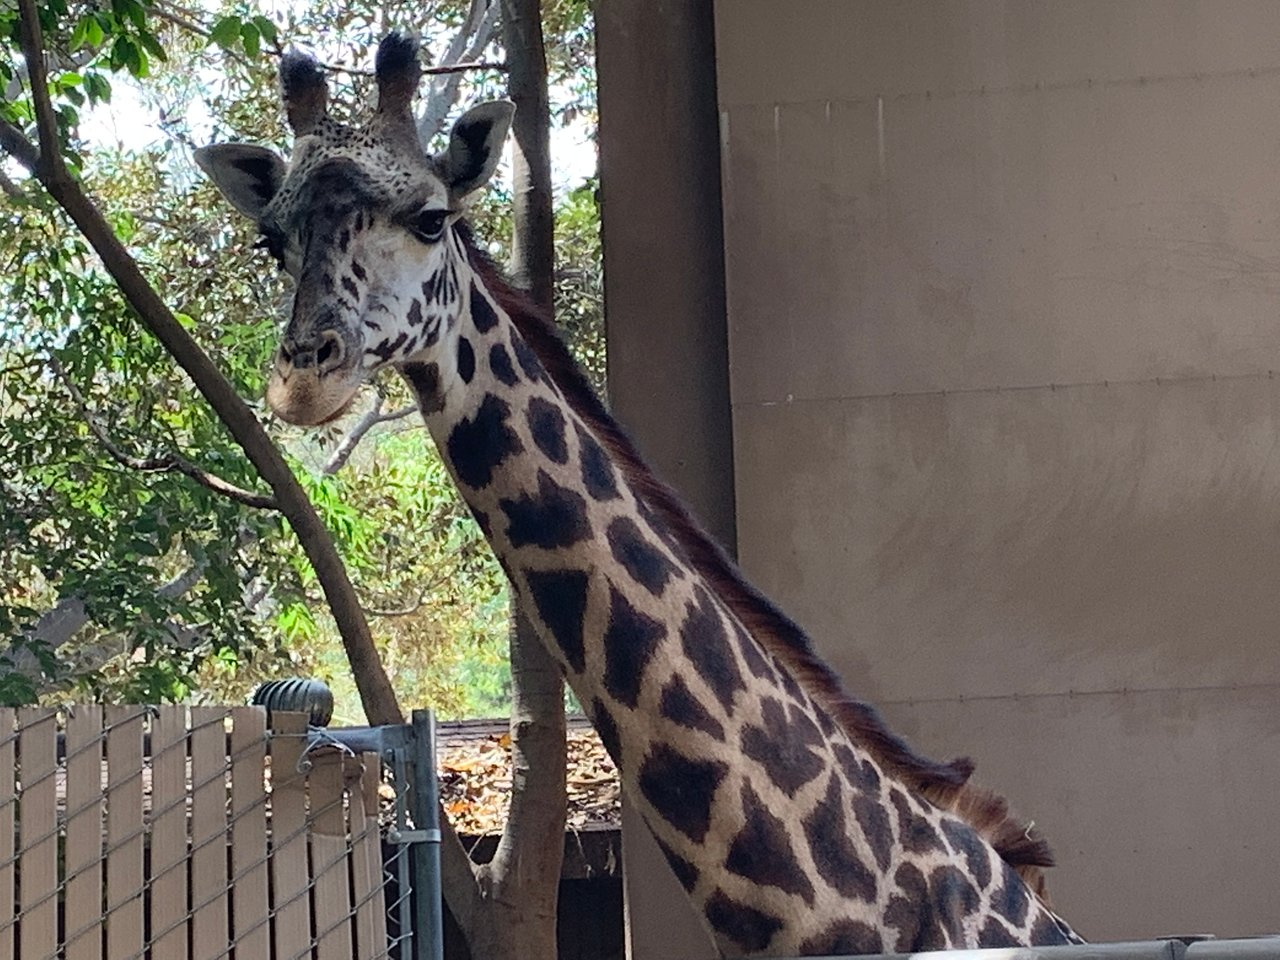 Los Angeles Zoo Botanical Gardens 2020 All You Need To Know Before You Go With Photos Tripadvisor